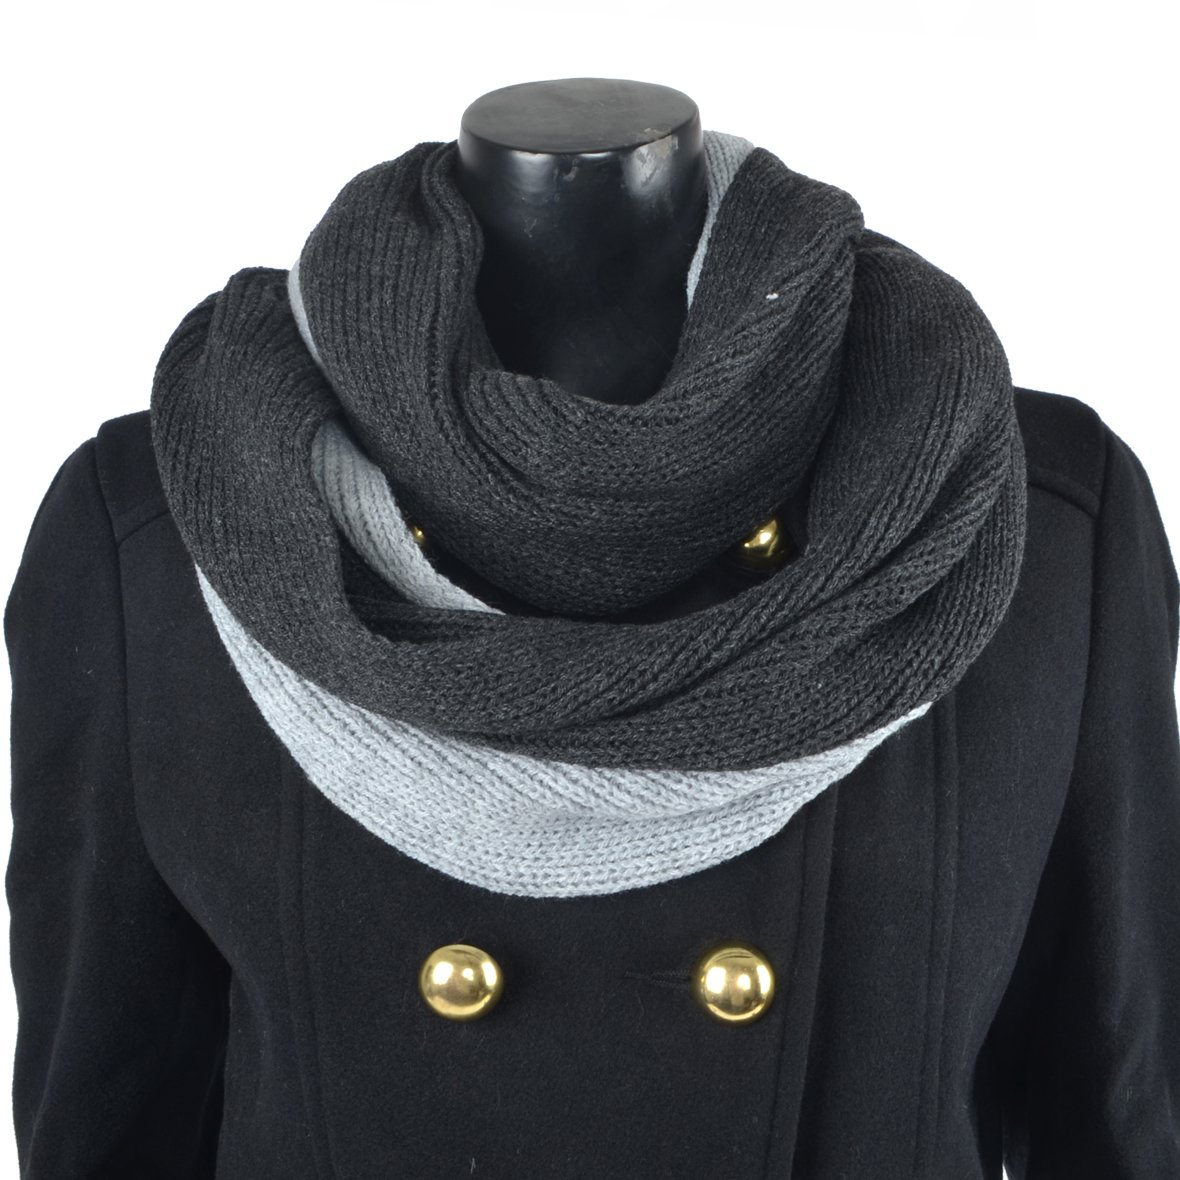 Men's Infinity Scarf Soft Warm Thick Knit Winter Scarves (Black&Grey) JESSE · RENA CF-E5002b-Black